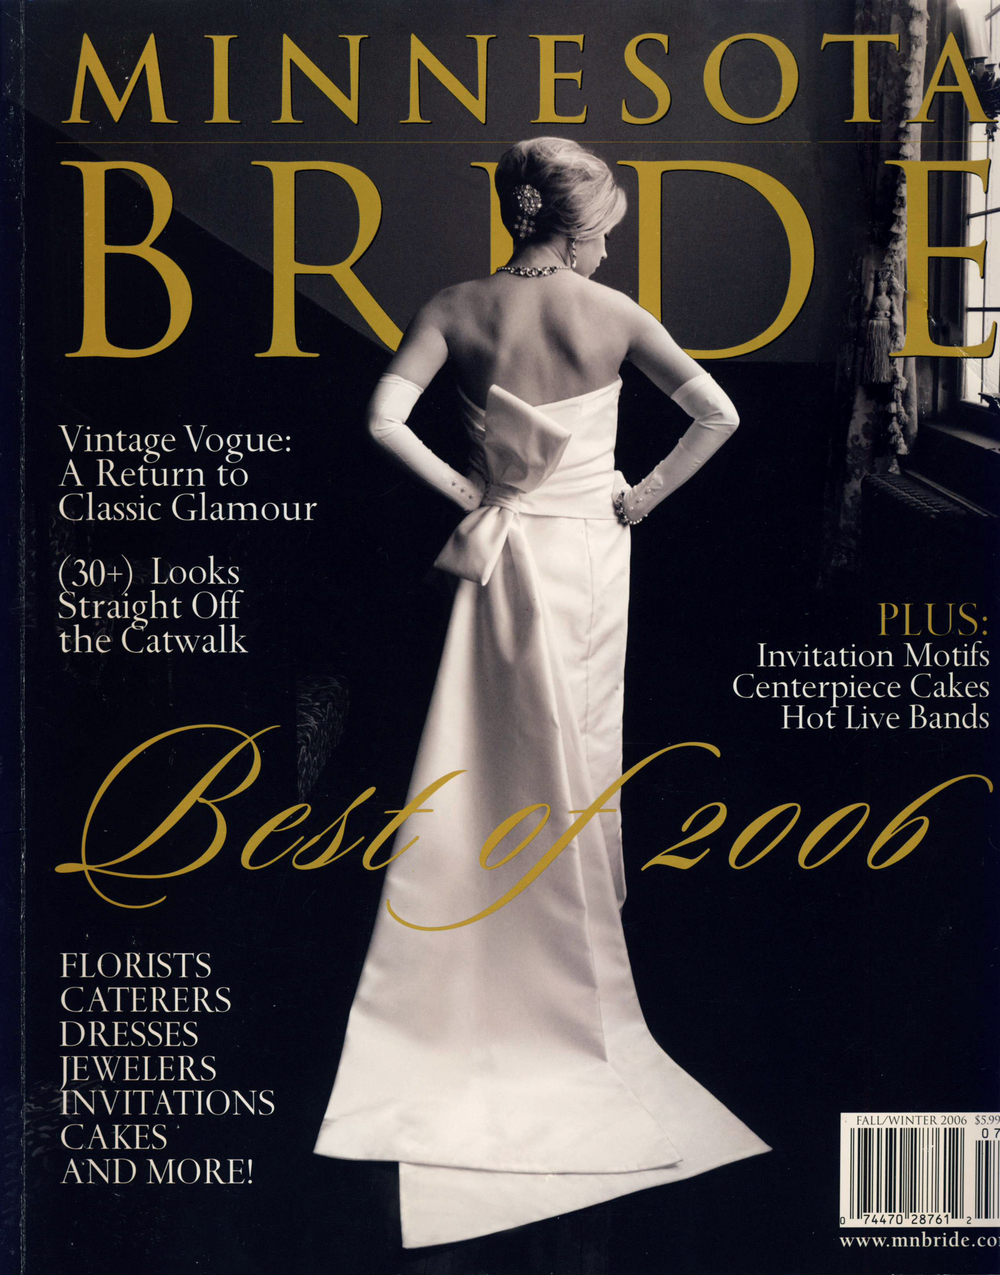 Minnesota Bride, Fall/Winter 2006